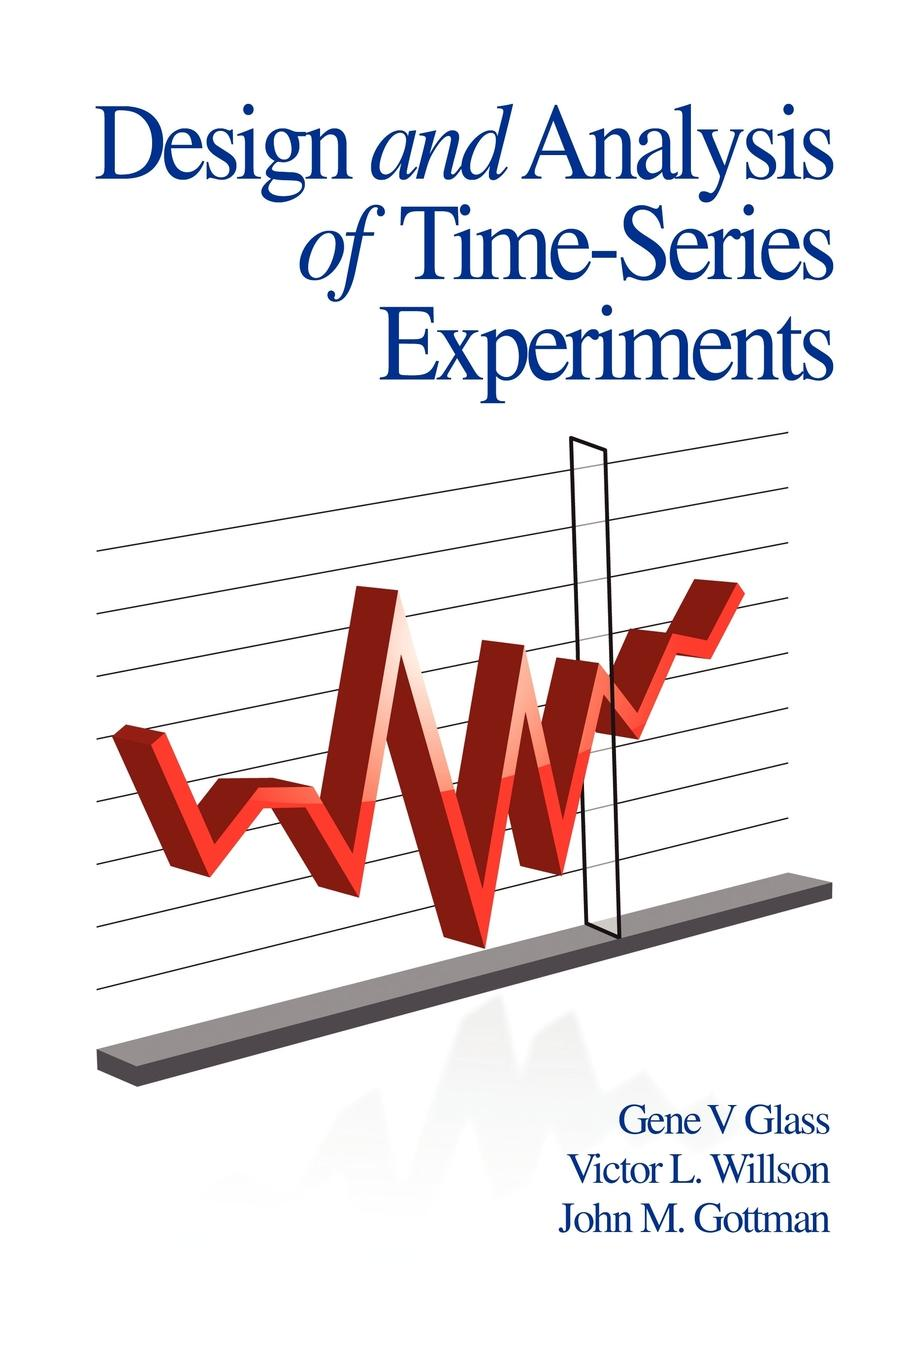 Glass V. Glass, Victor L. Willson, John M. Gottman Design and Analysis of Time-Series Experiments (PB) laplante phillip a real time systems design and analysis tools for the practitioner